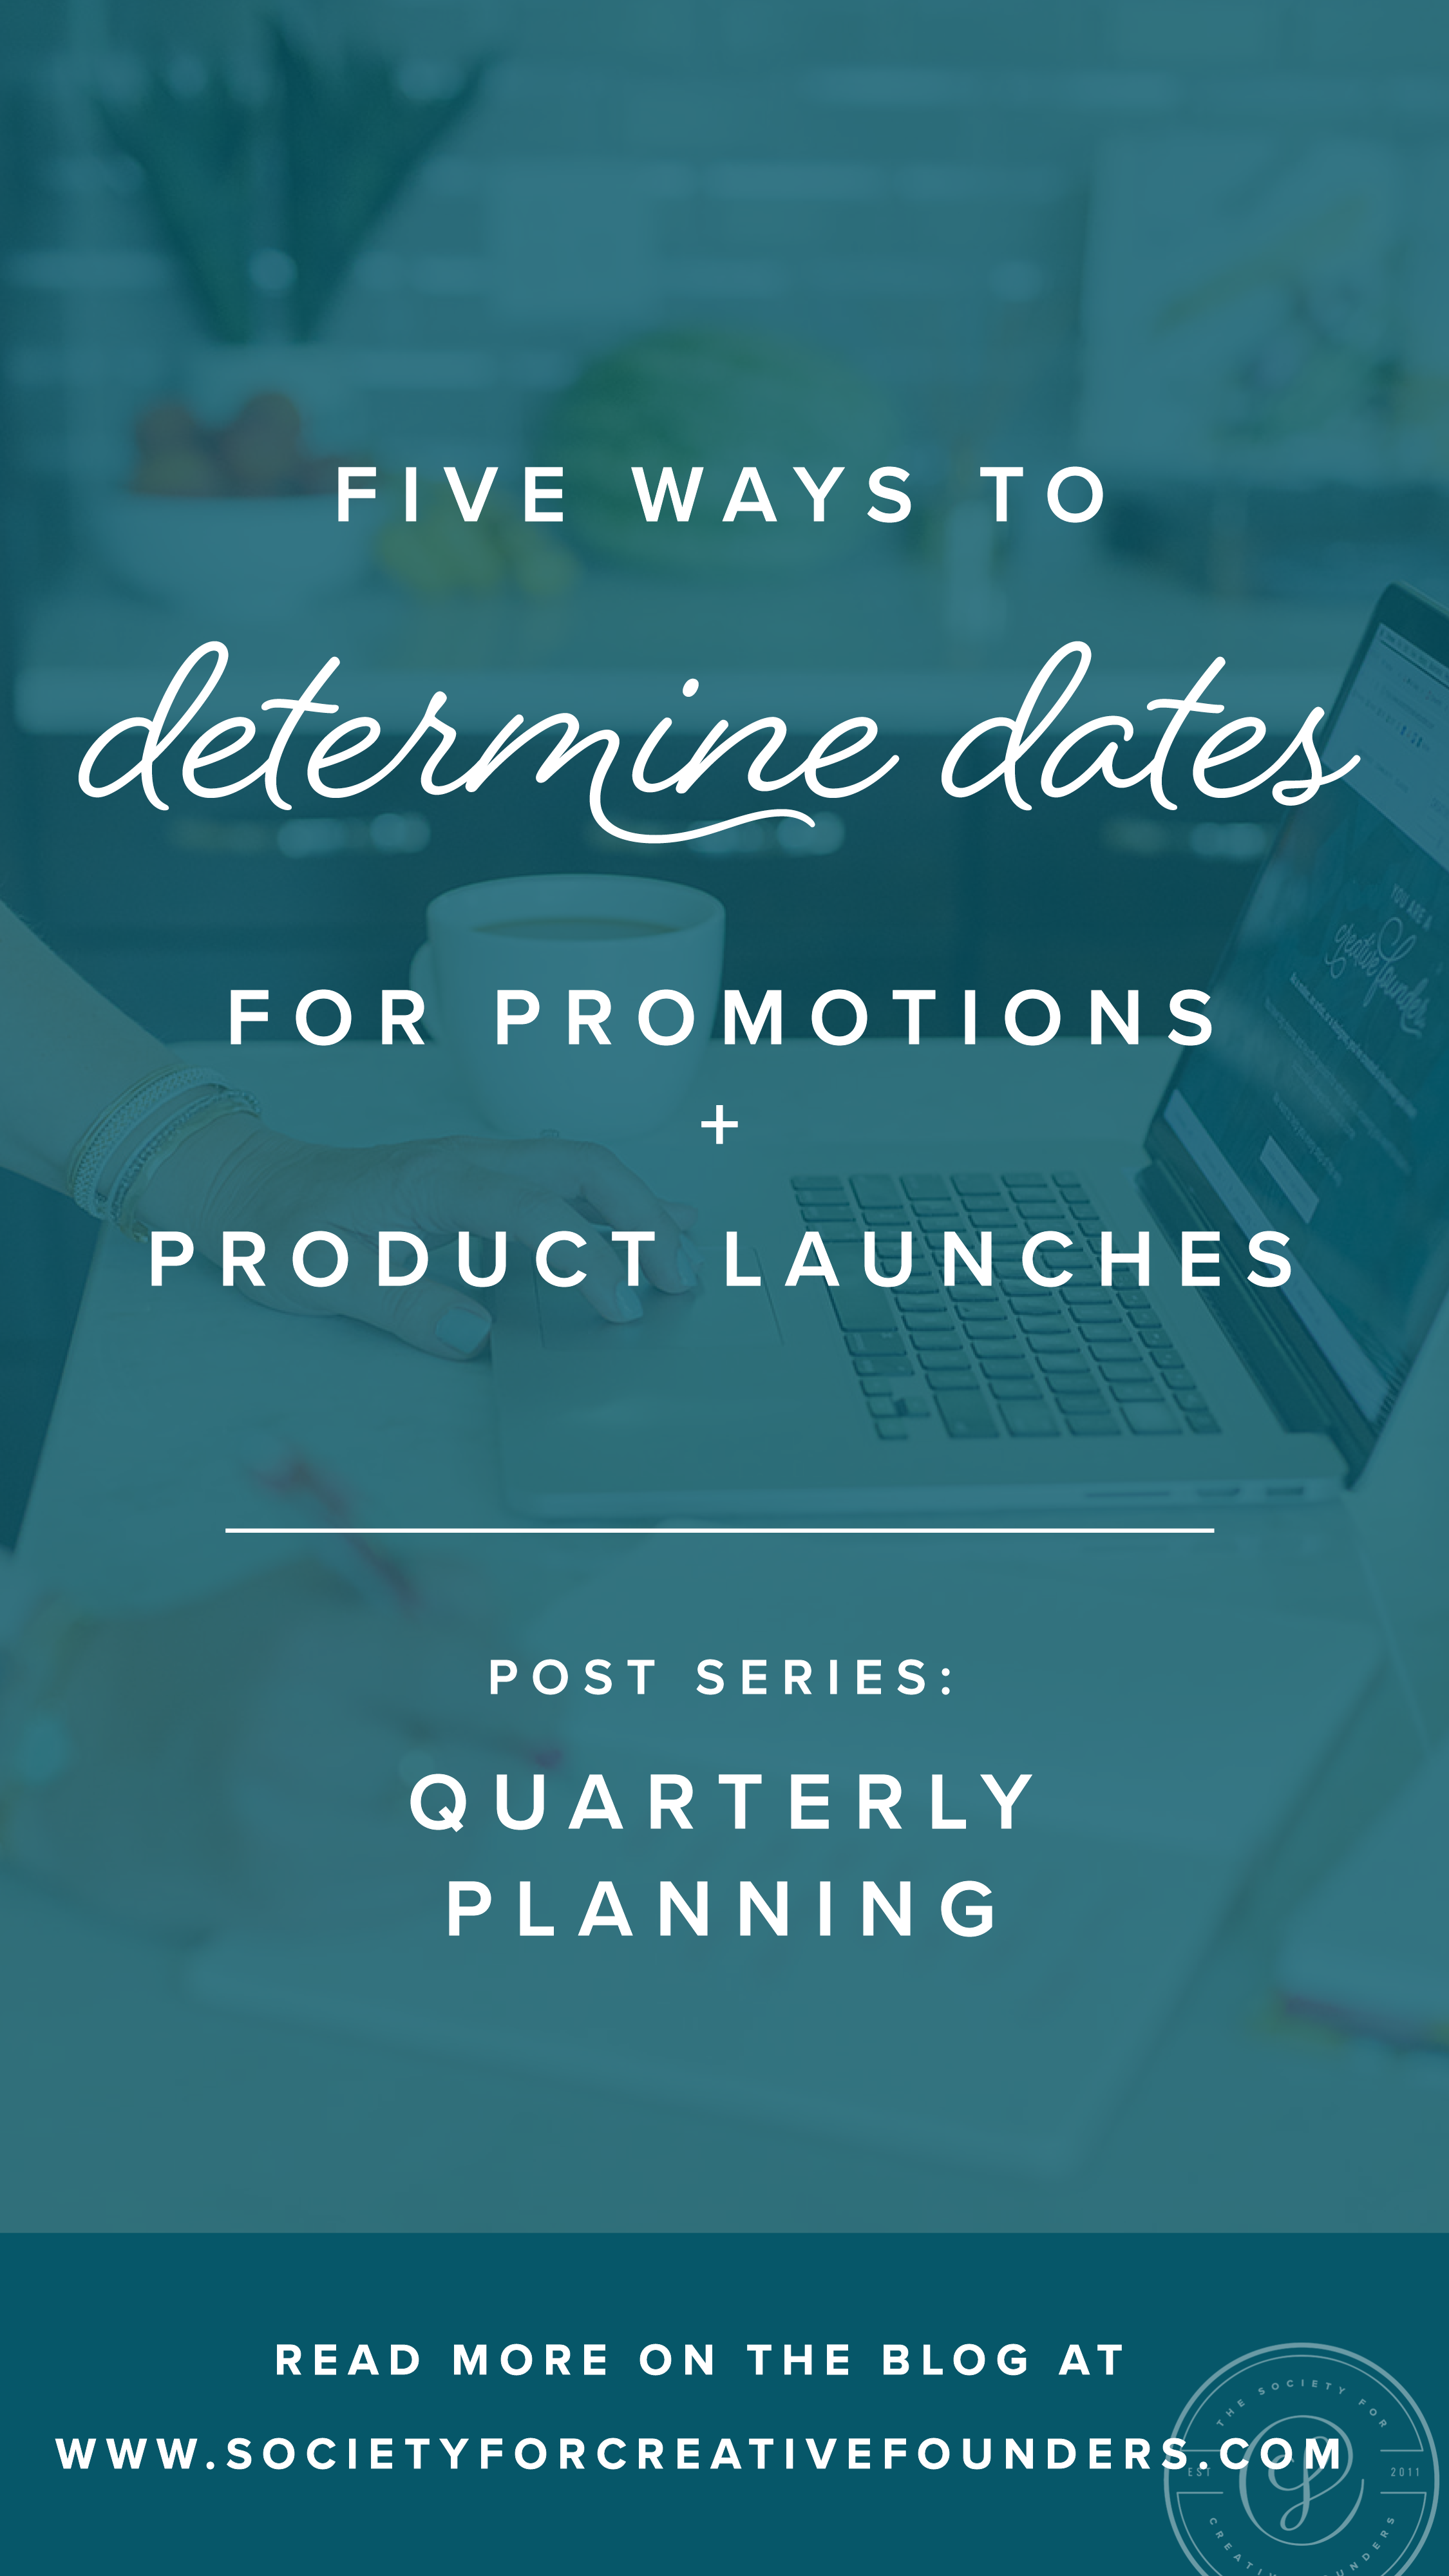 How to Plan Product Launches - Society for Creative Founders